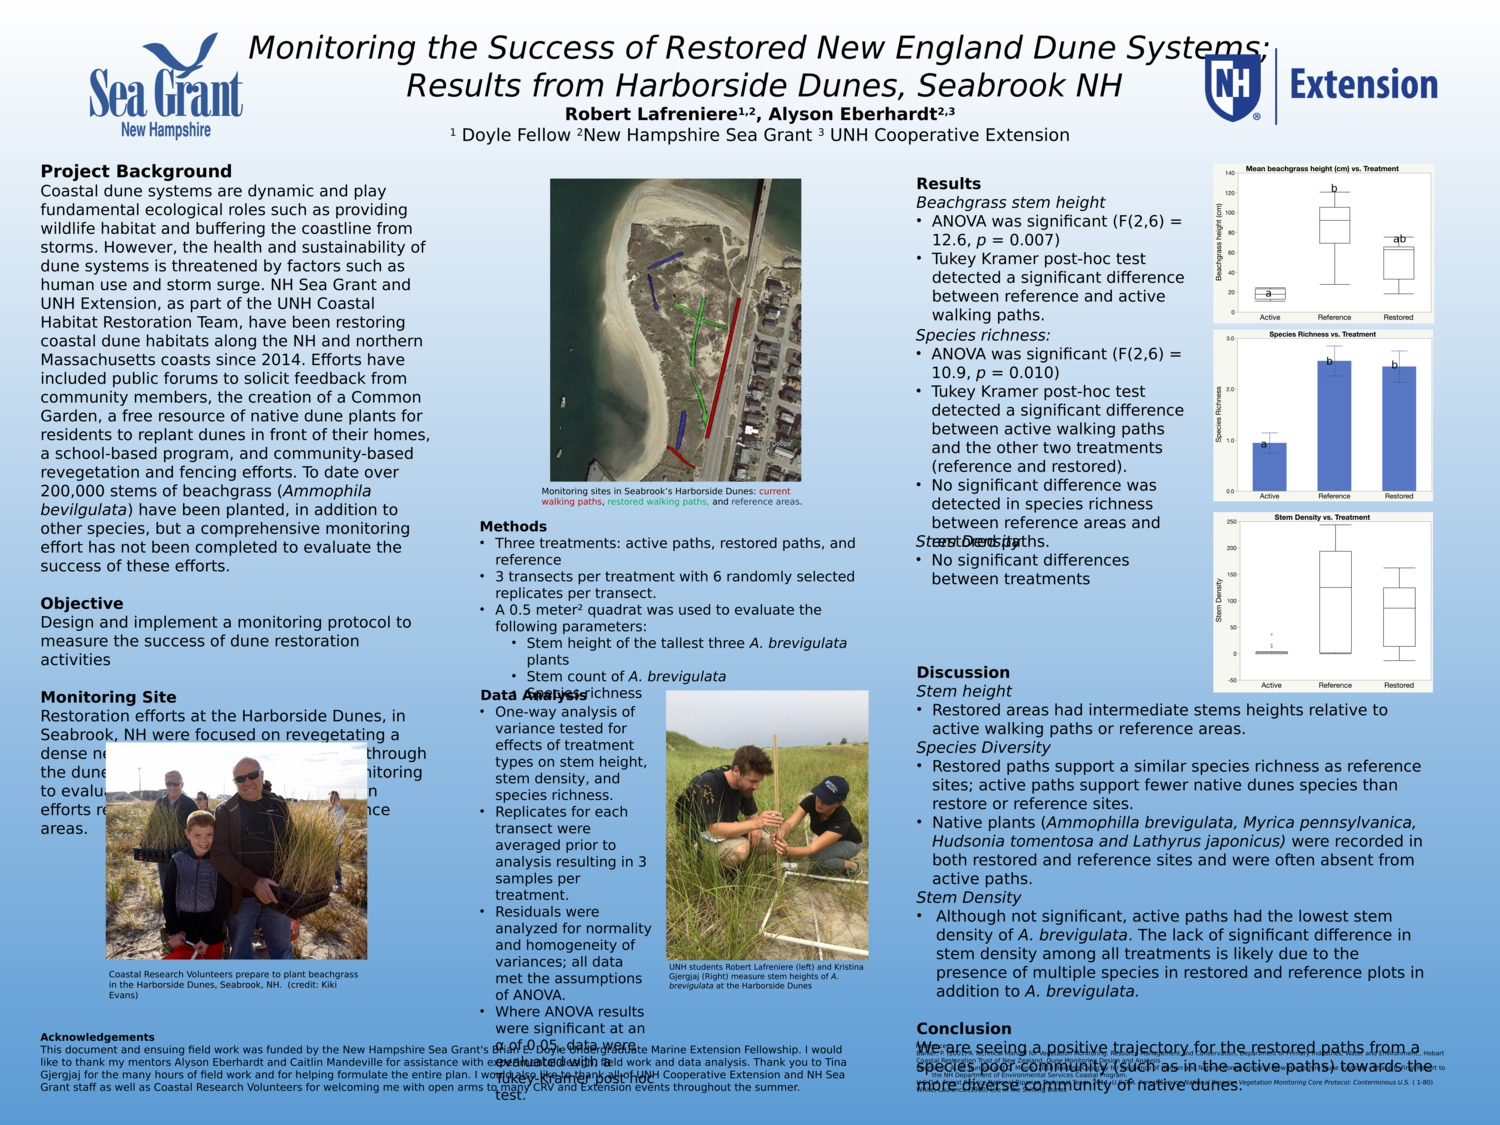 Monitoring The Success Of Restored New England Dune Systems;  Results From Harborside Dunes, Seabrook Nh by alysone